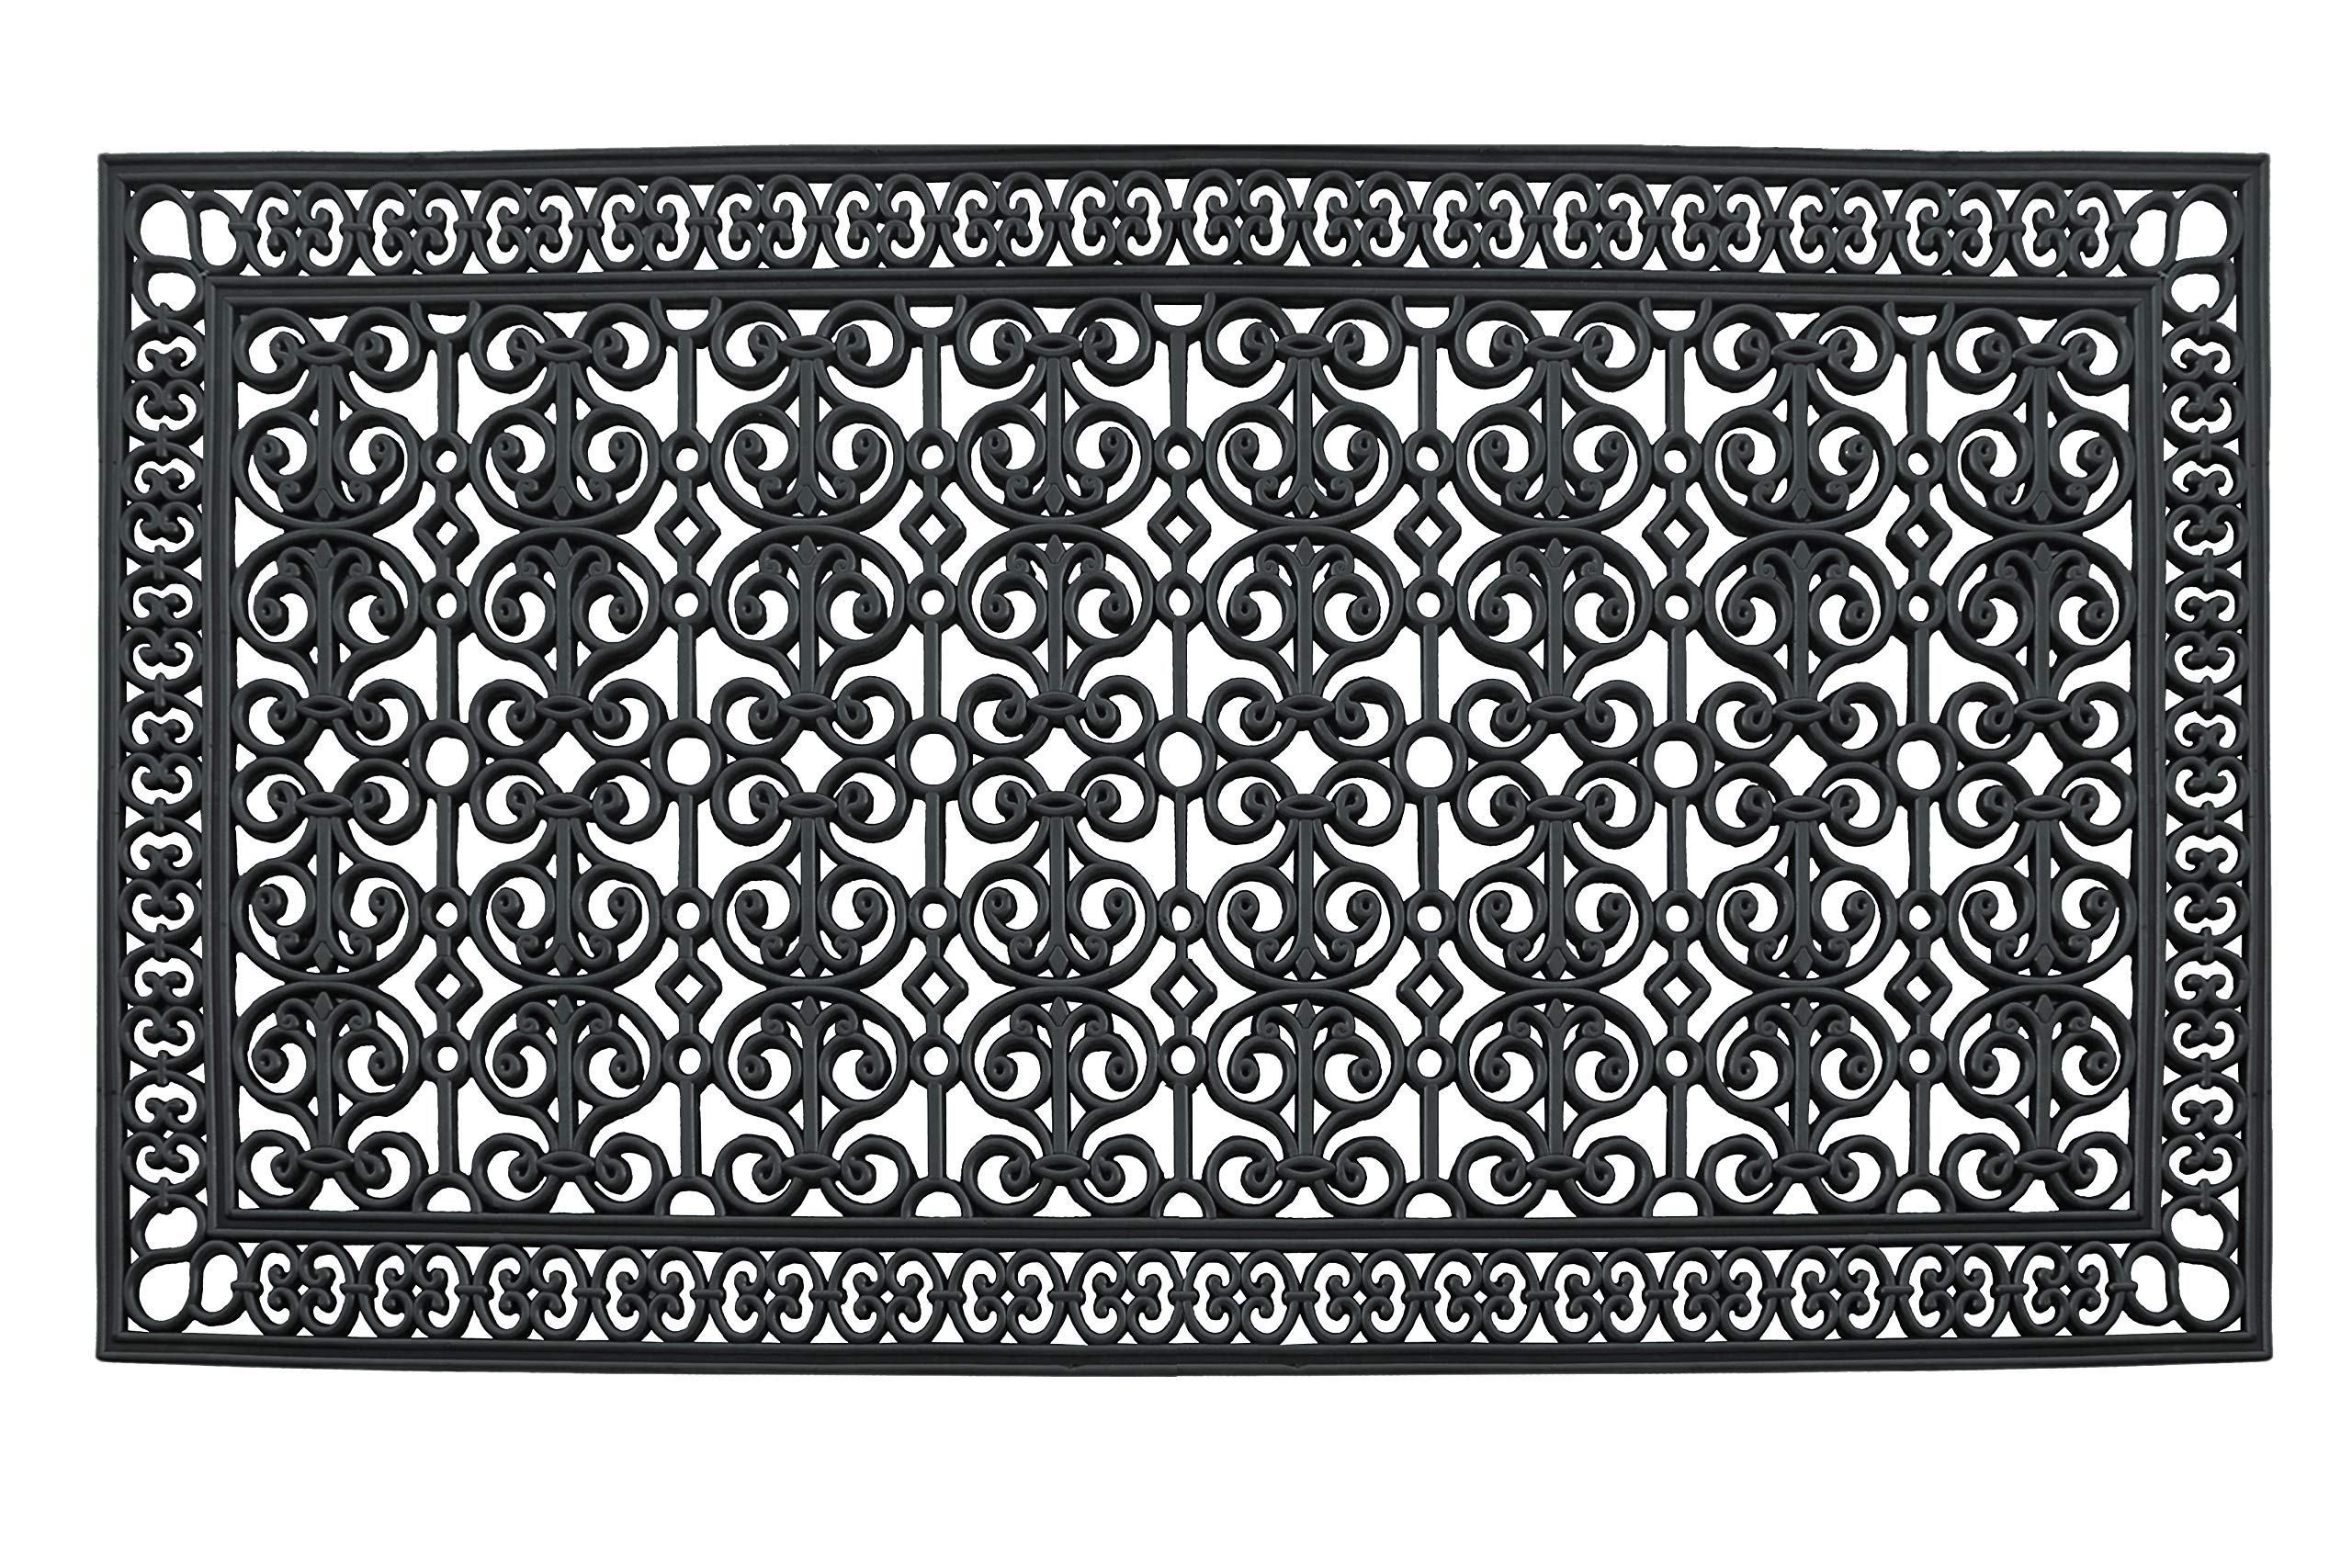 A1 Home Collections A1HCCL68 Doormat A1HC First Impression Rubber Paisley, Beautifully Hand Finished,Thick, 36X72, Black Estate 36'' X 72'' by A1 Home Collections (Image #1)